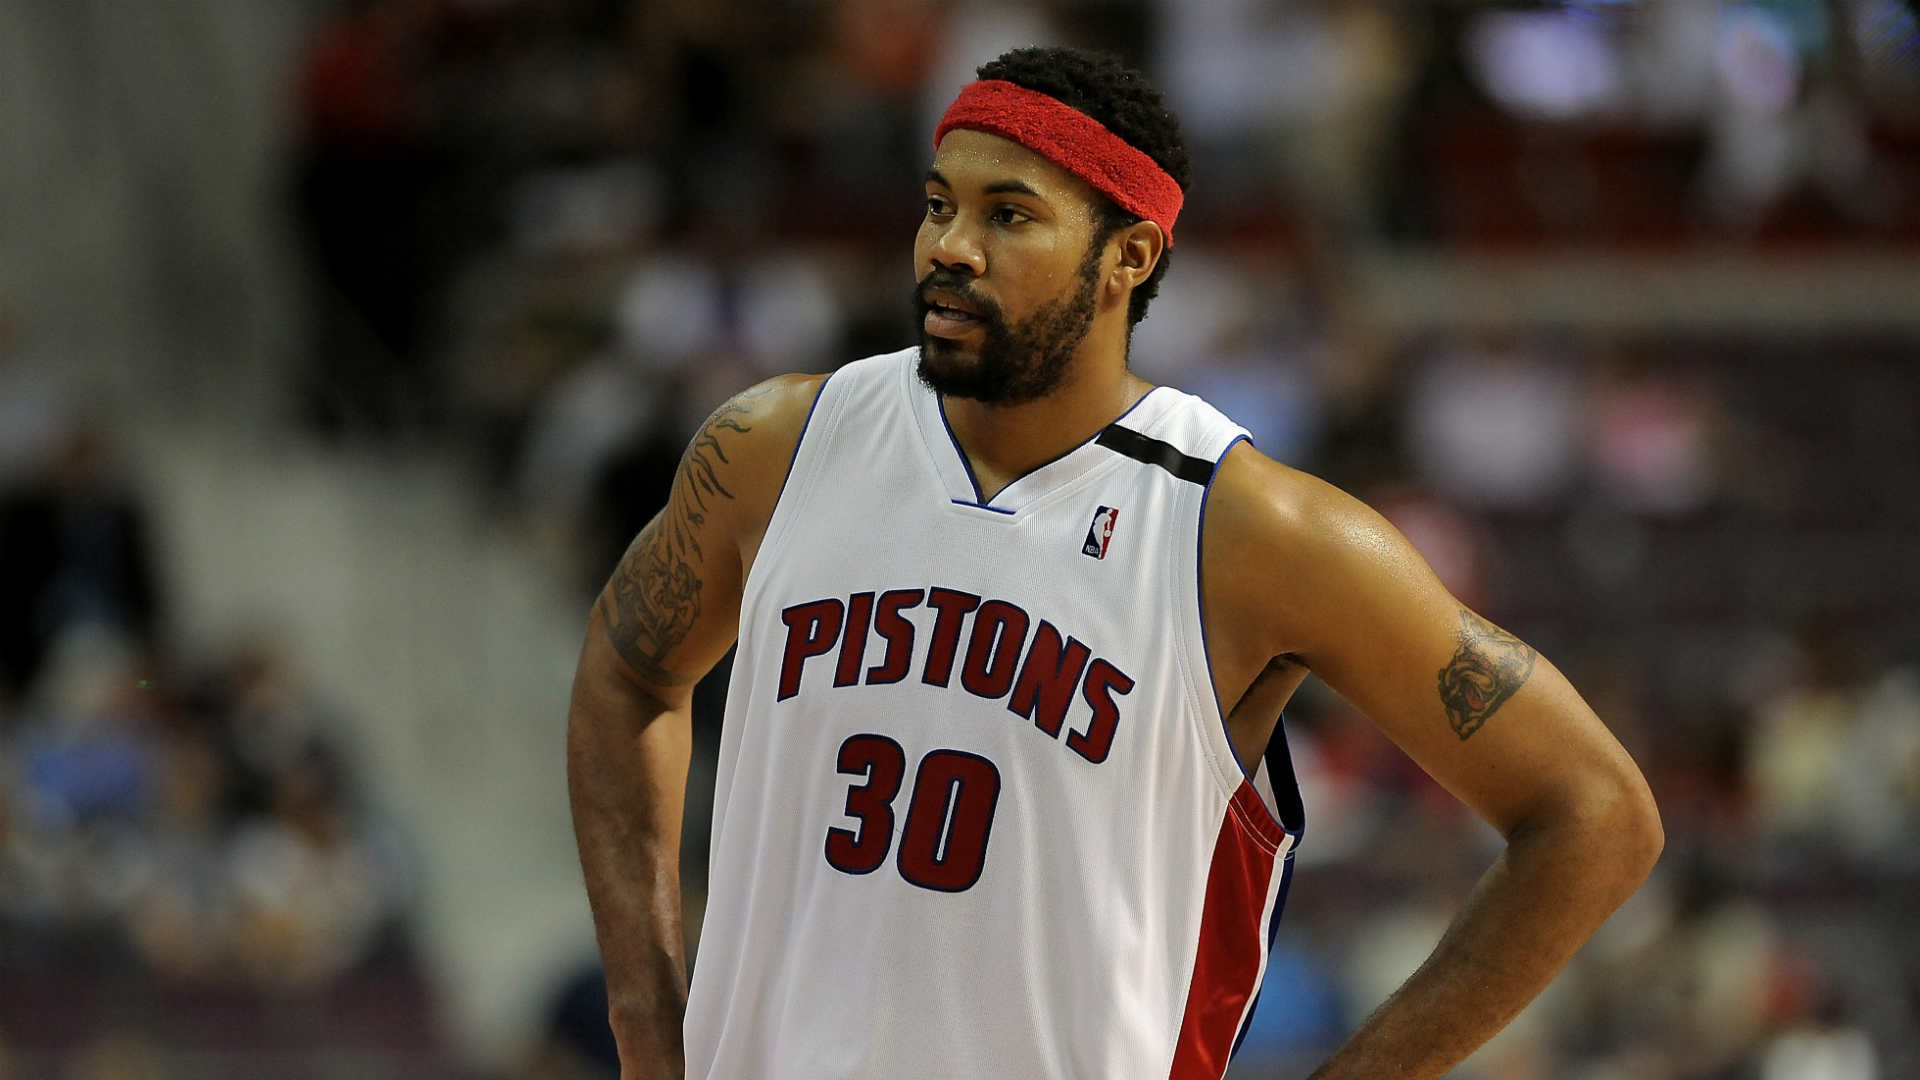 Rasheed Wallace drives truck filled with water from North Carolina